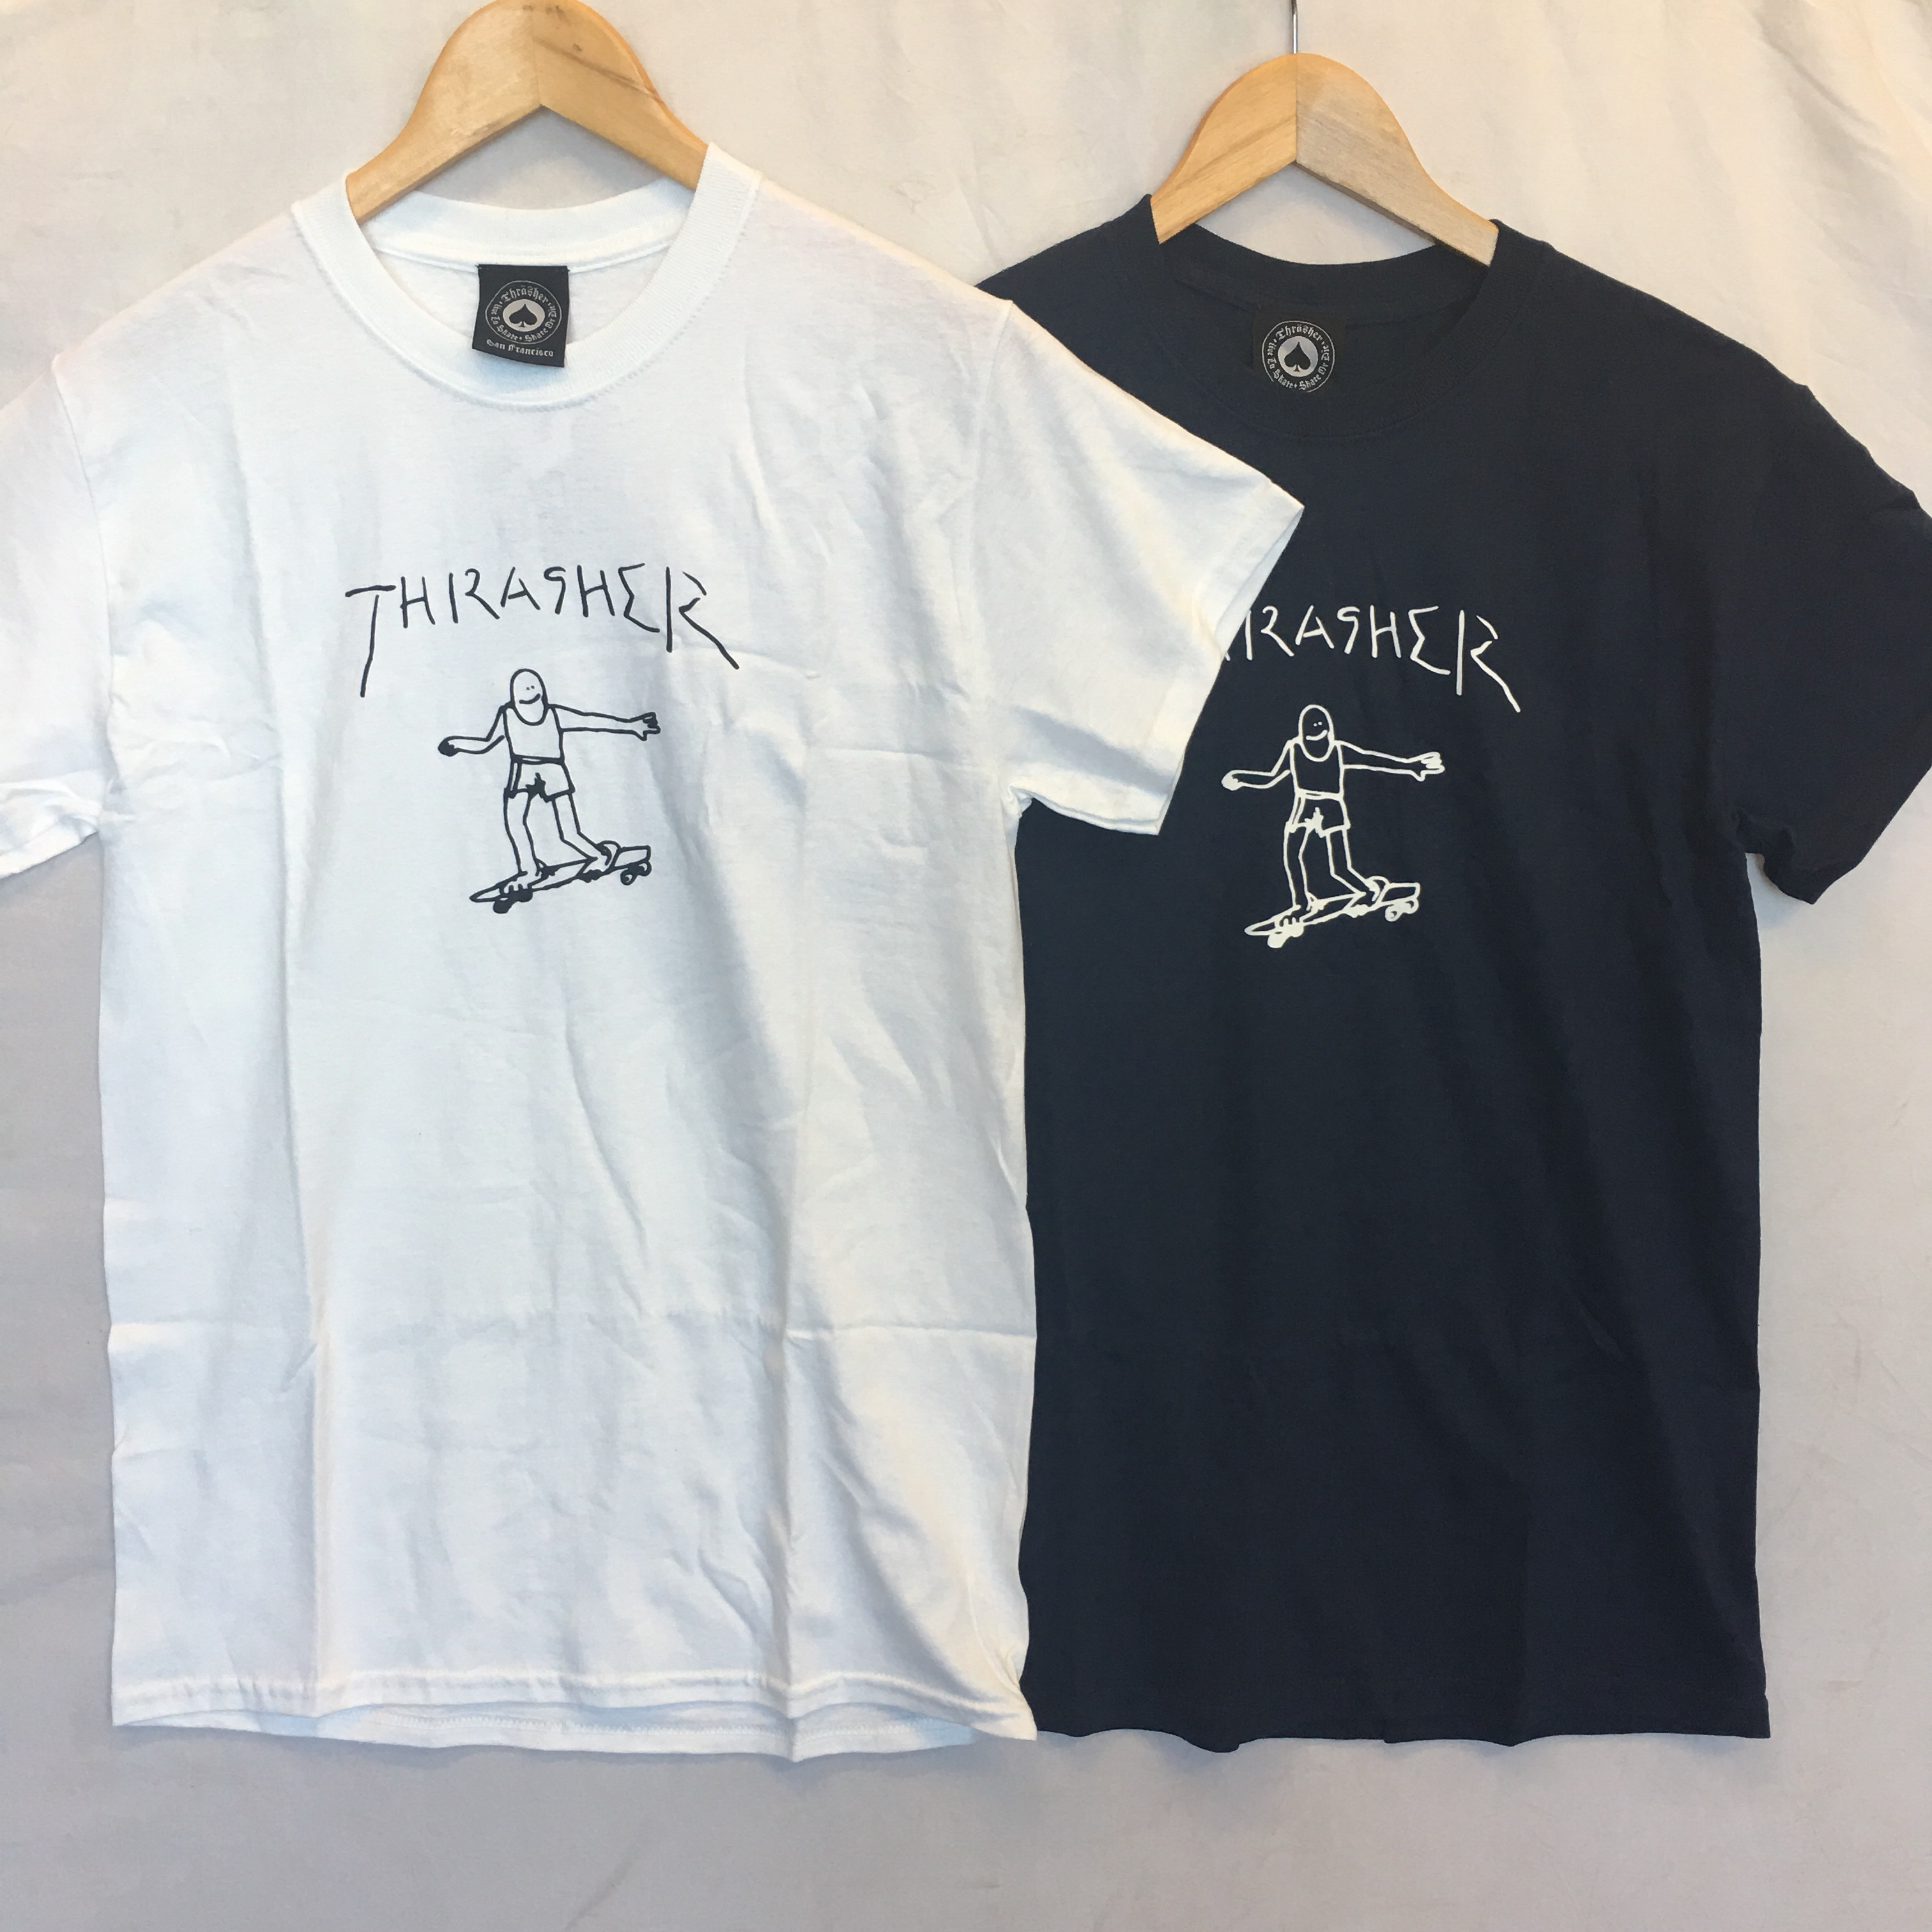 995f1c62 Thrasher Gonz Tee Double Pack. One navy tee and one white. - Depop